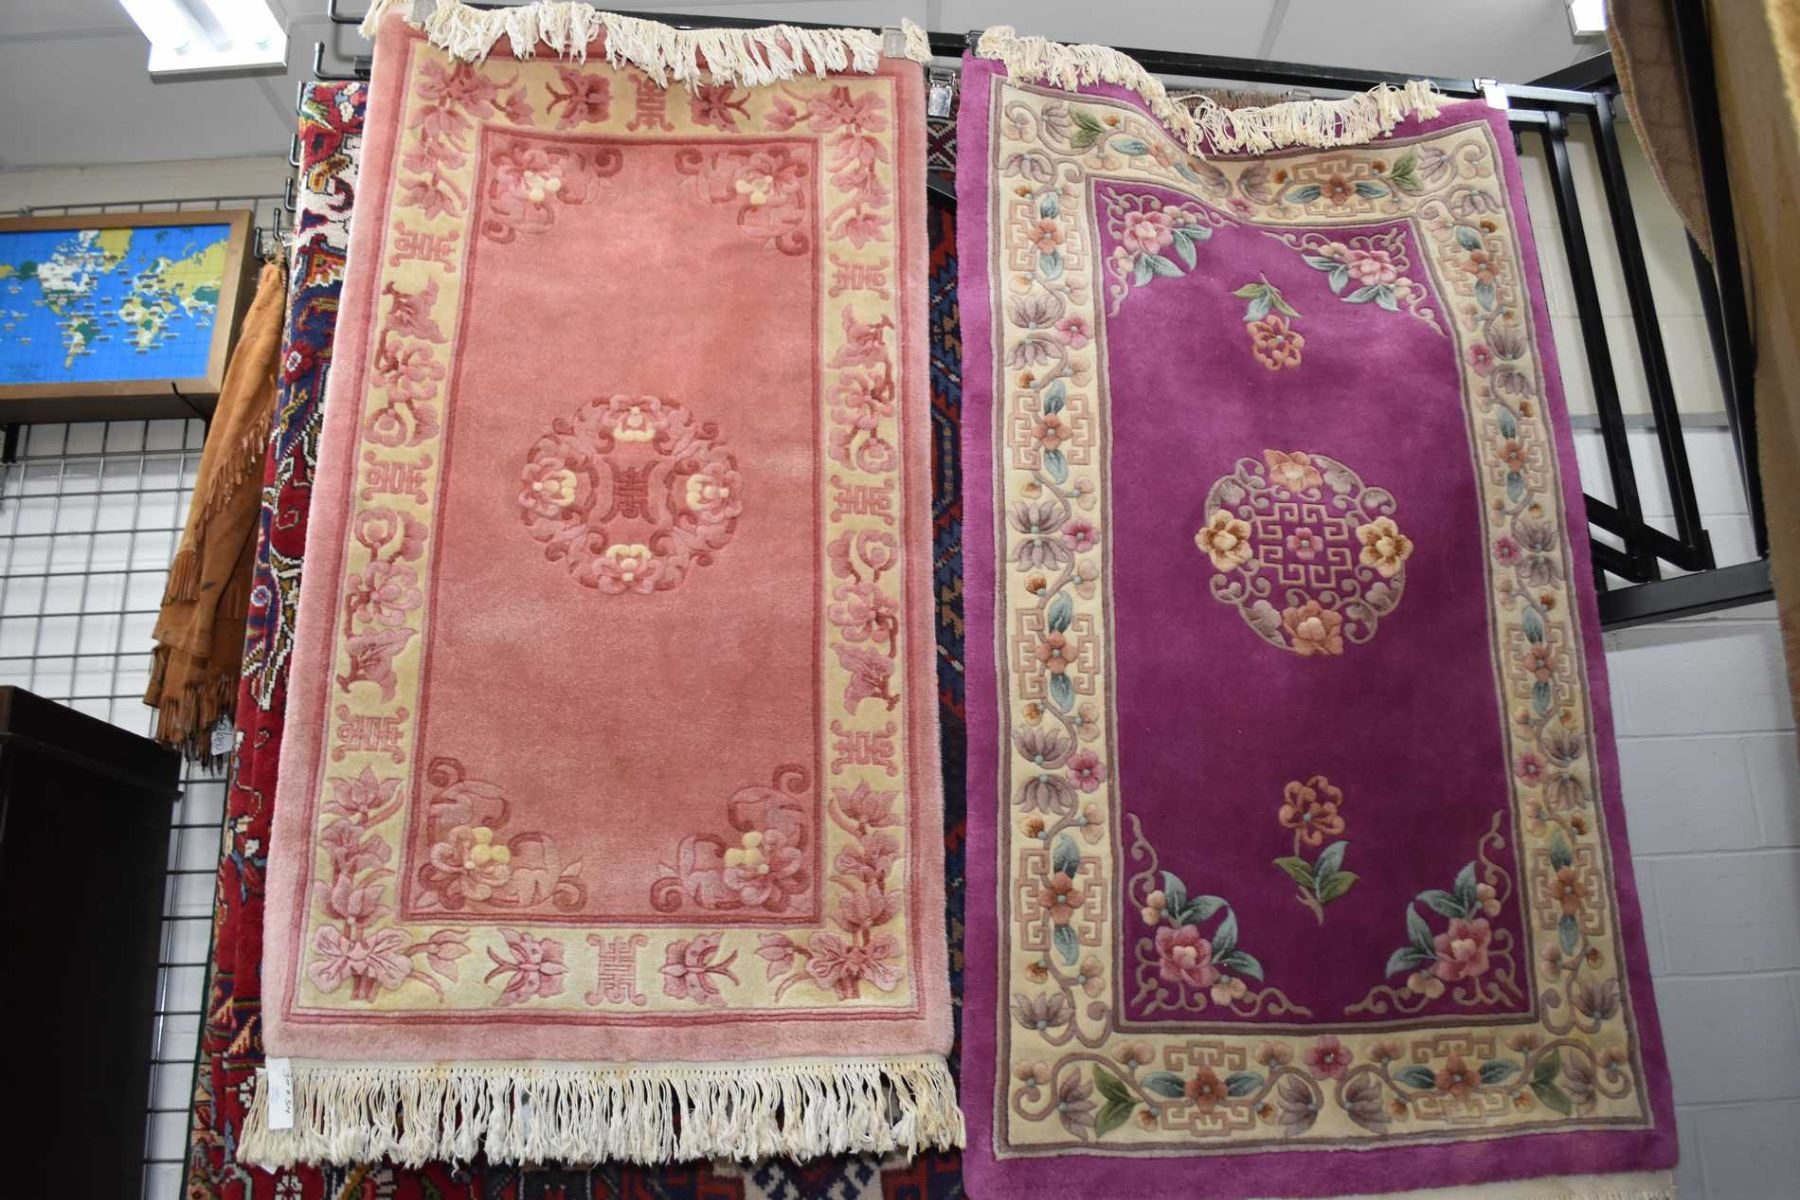 Image 1 Two Oriental Style Sculpted Wool Rugs One In Shades Of Pink And